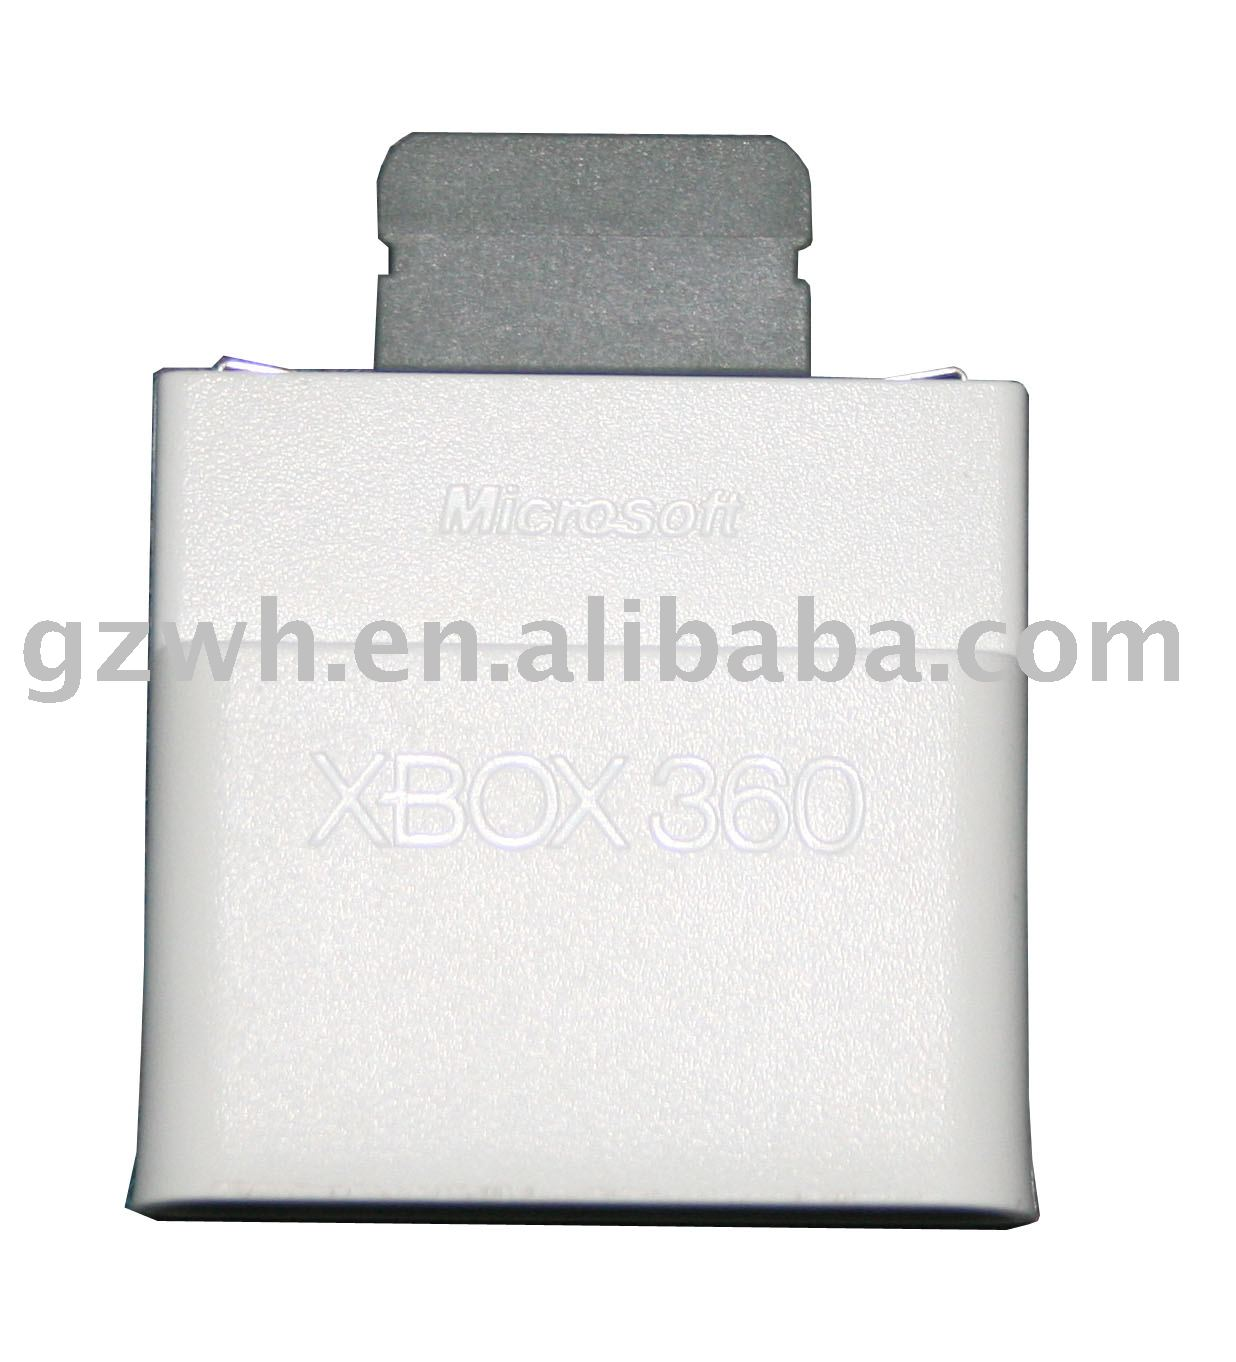 New FOR XBOX 360 64MB MEMORY CARD